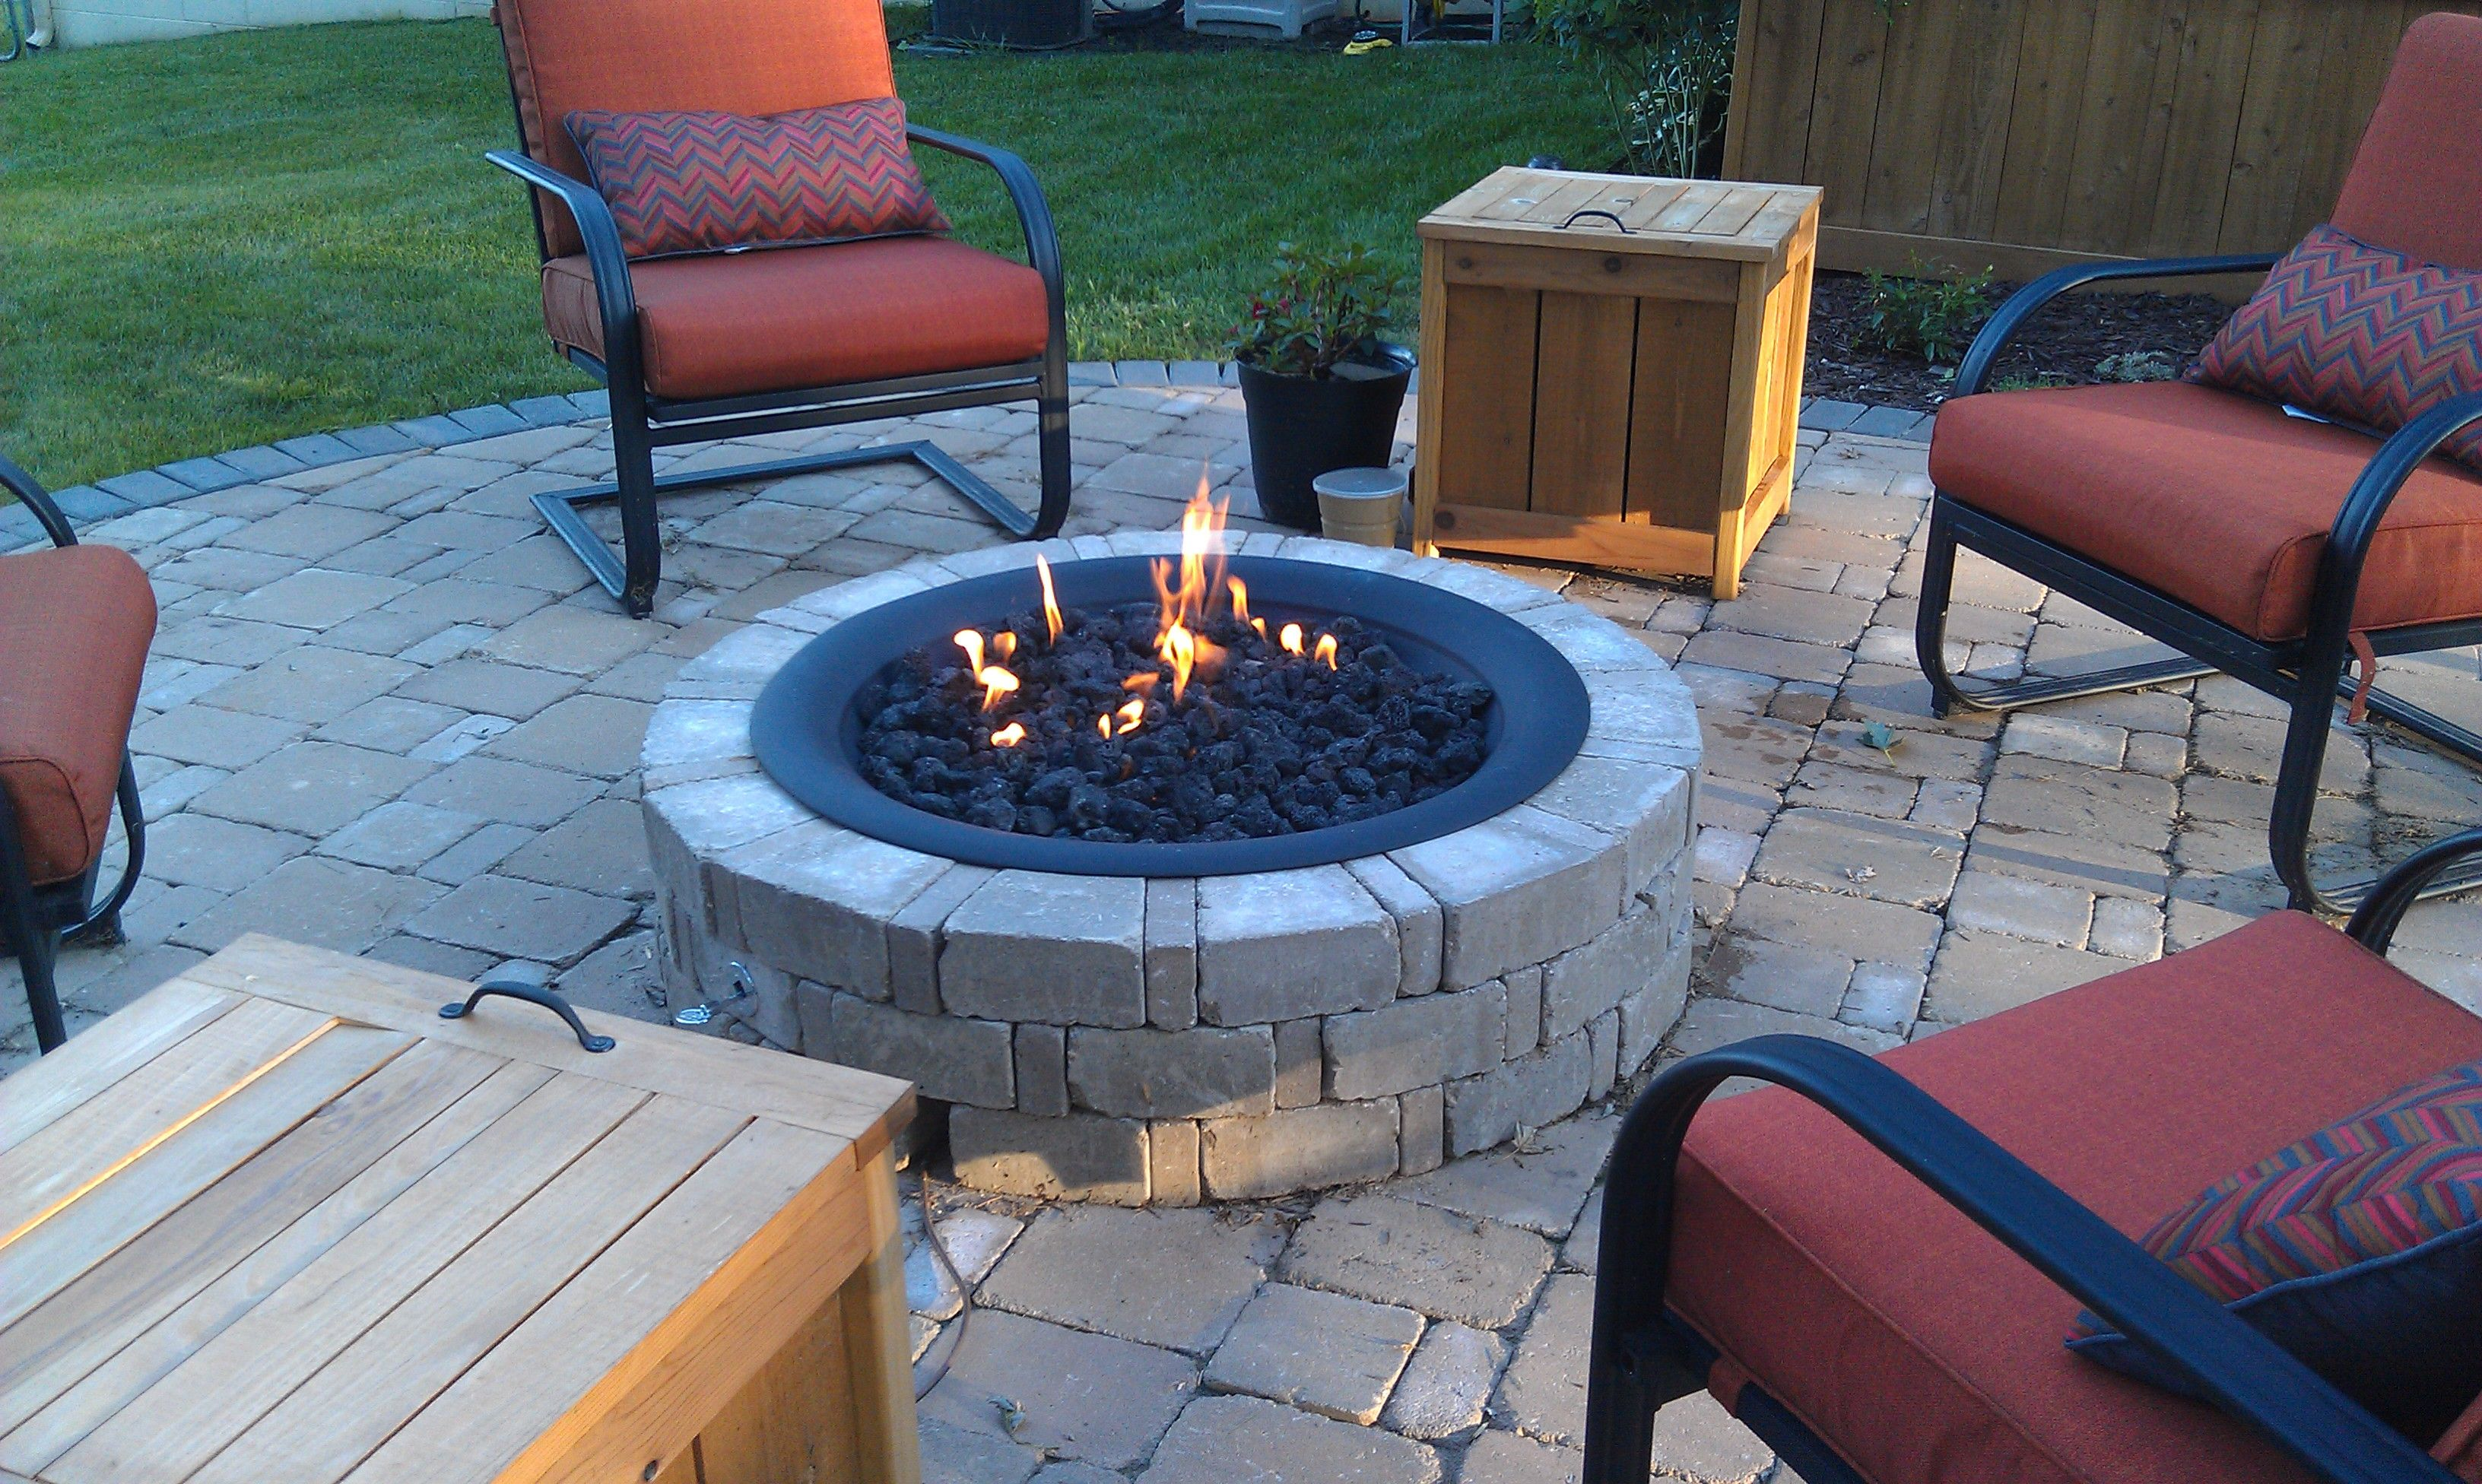 Diy Propane Gas Firepit 300 00 Bricks From Menards Firepit Bowl From Home Depot Propane Gas Fire Outdoor Fire Pit Fire Pit Decor Outdoor Fire Pit Designs